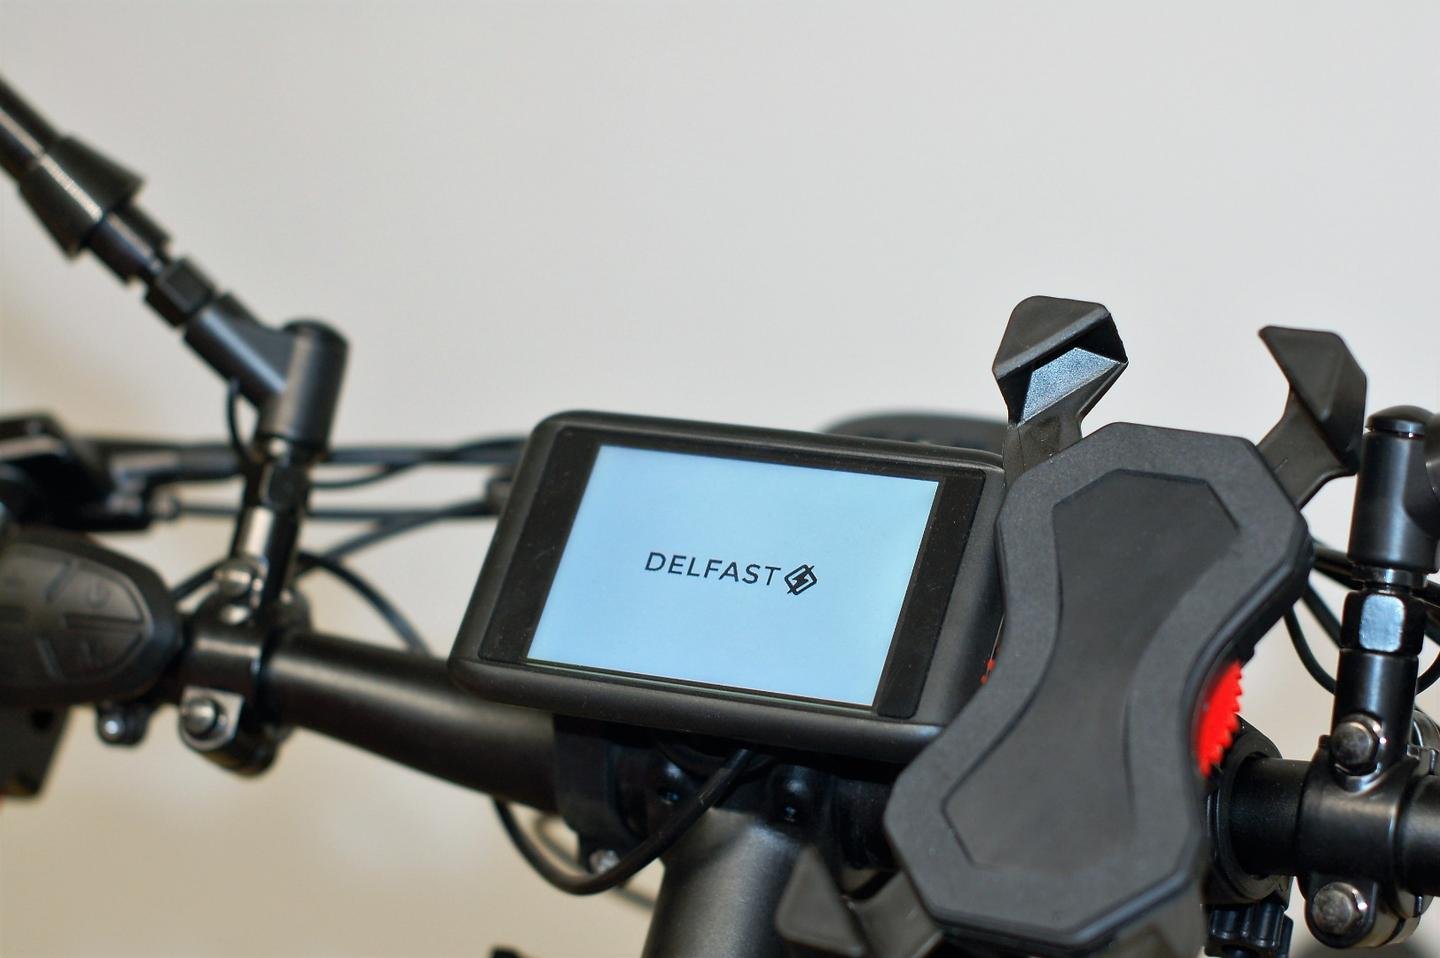 Delfast has waterproofed the color display on the upcoming Top 2.0 e-bike